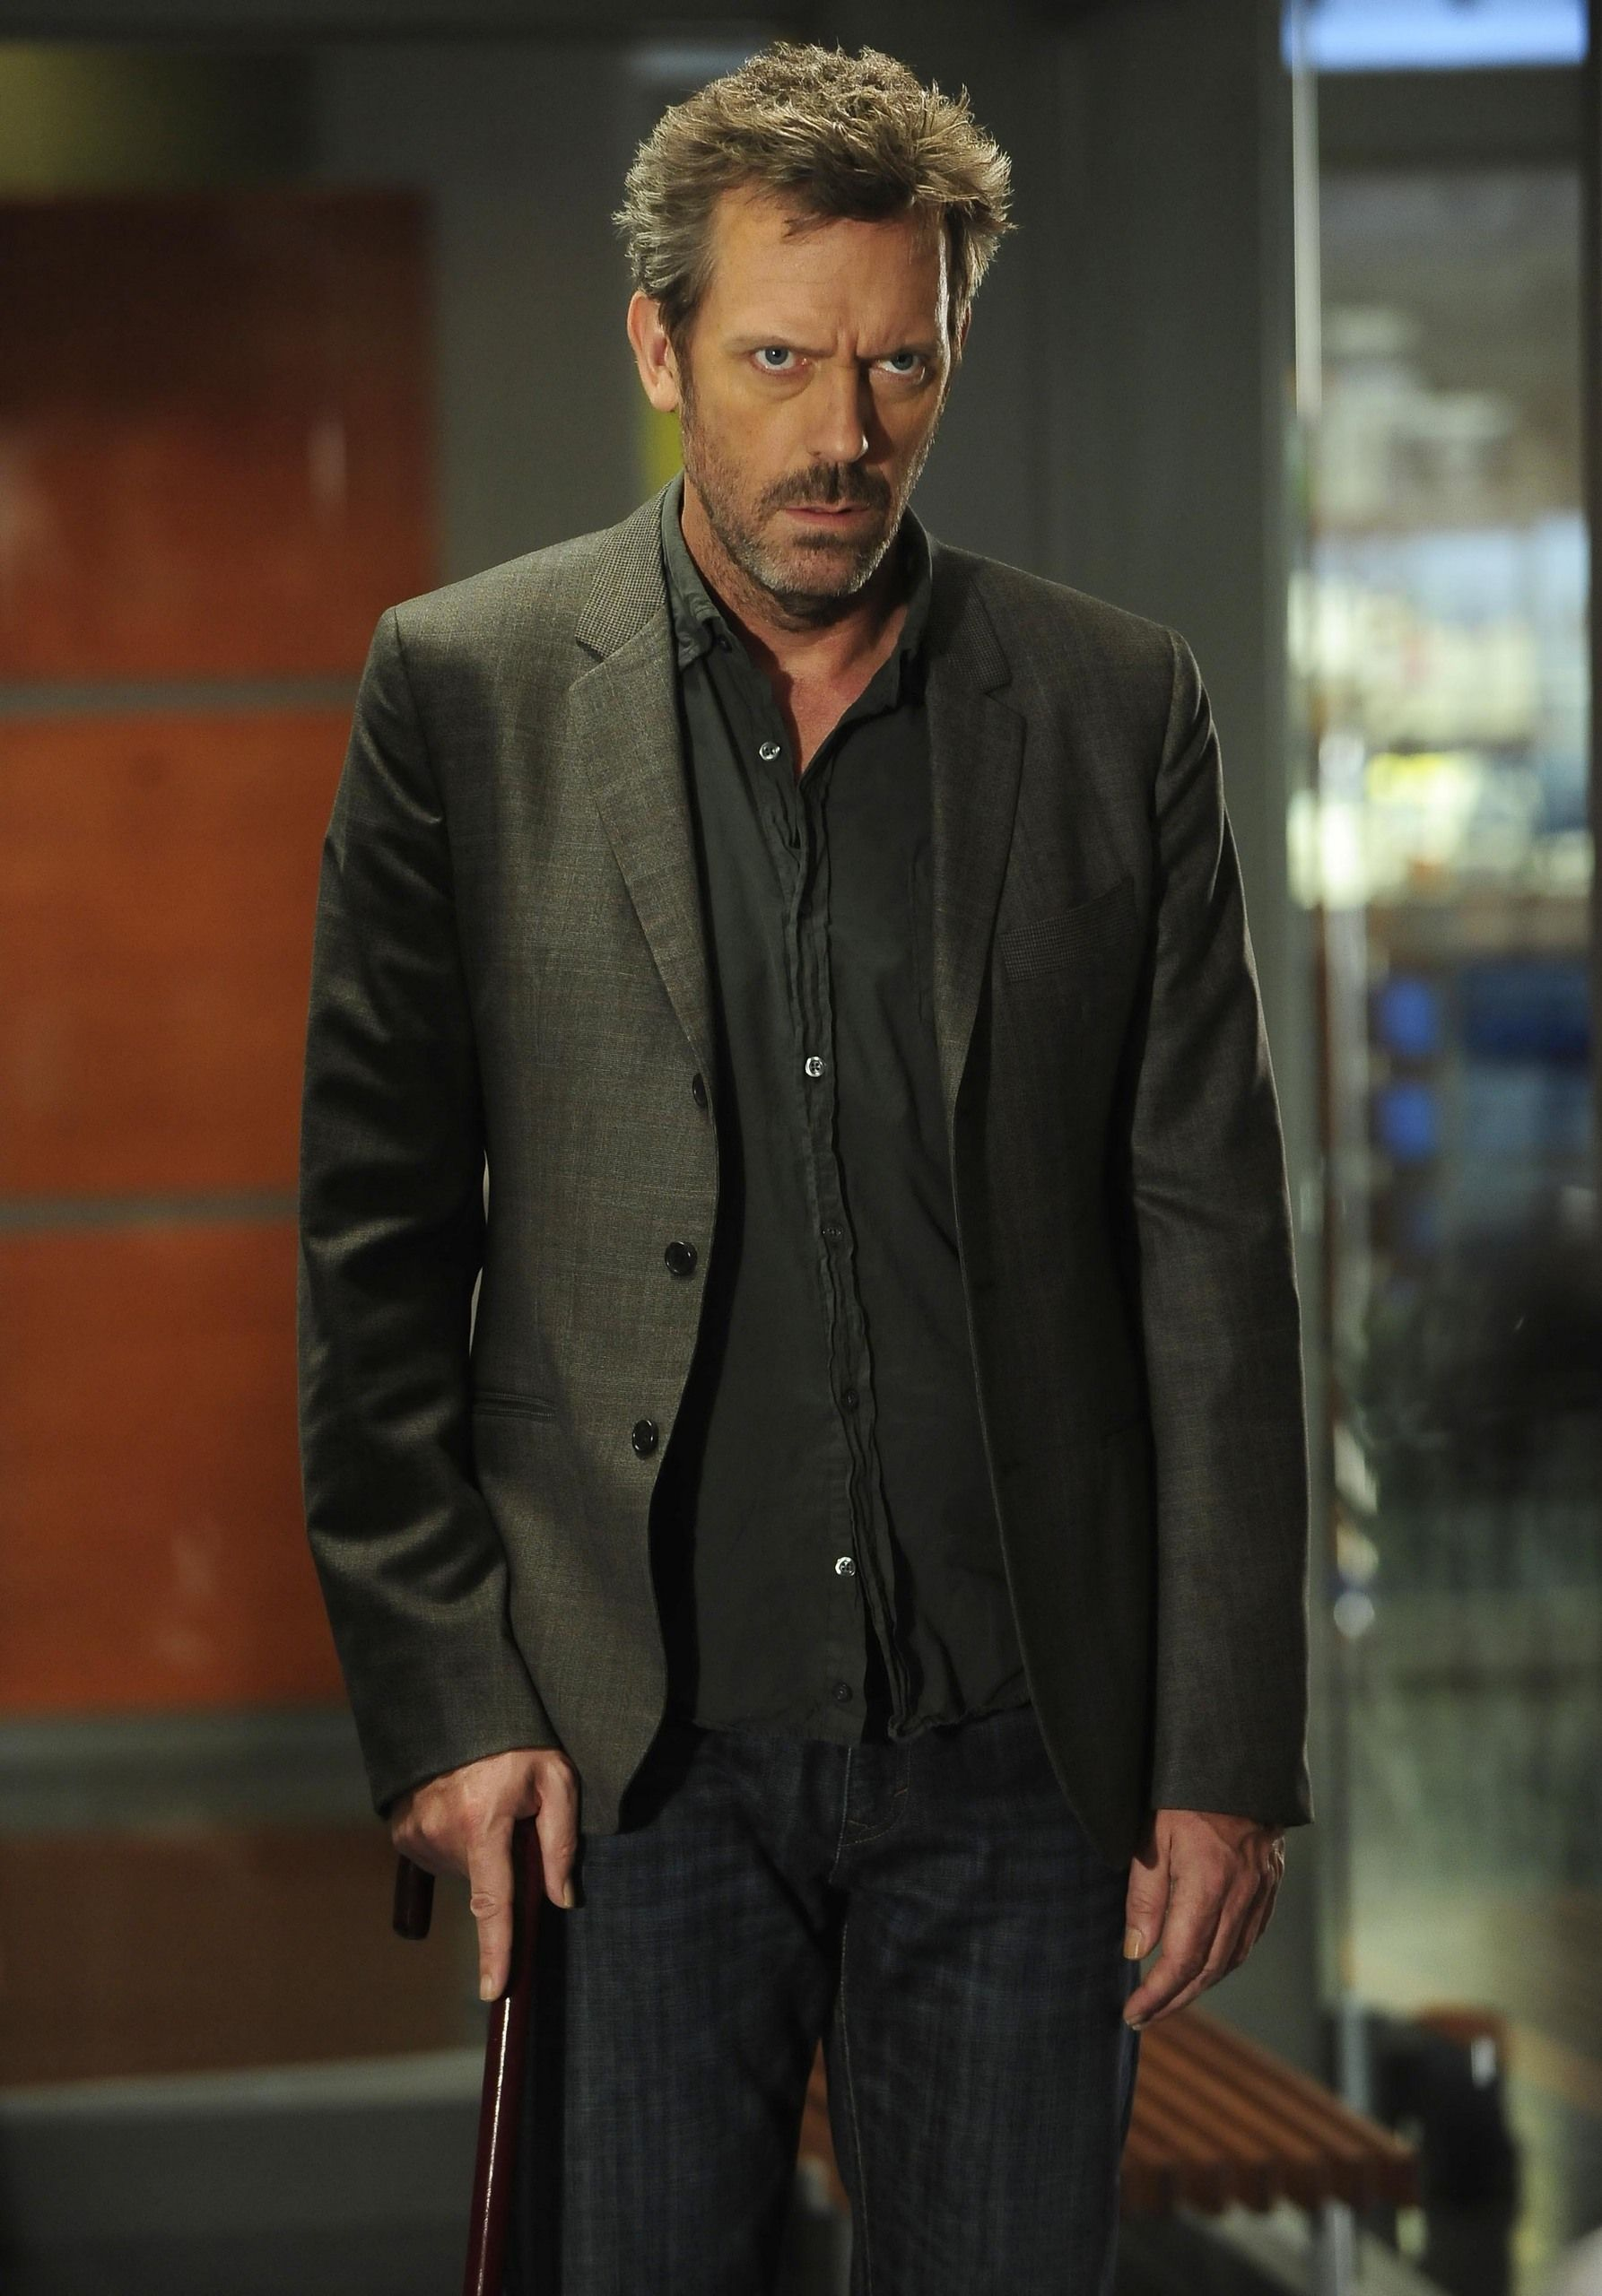 House House md, Gregory house, Dr house